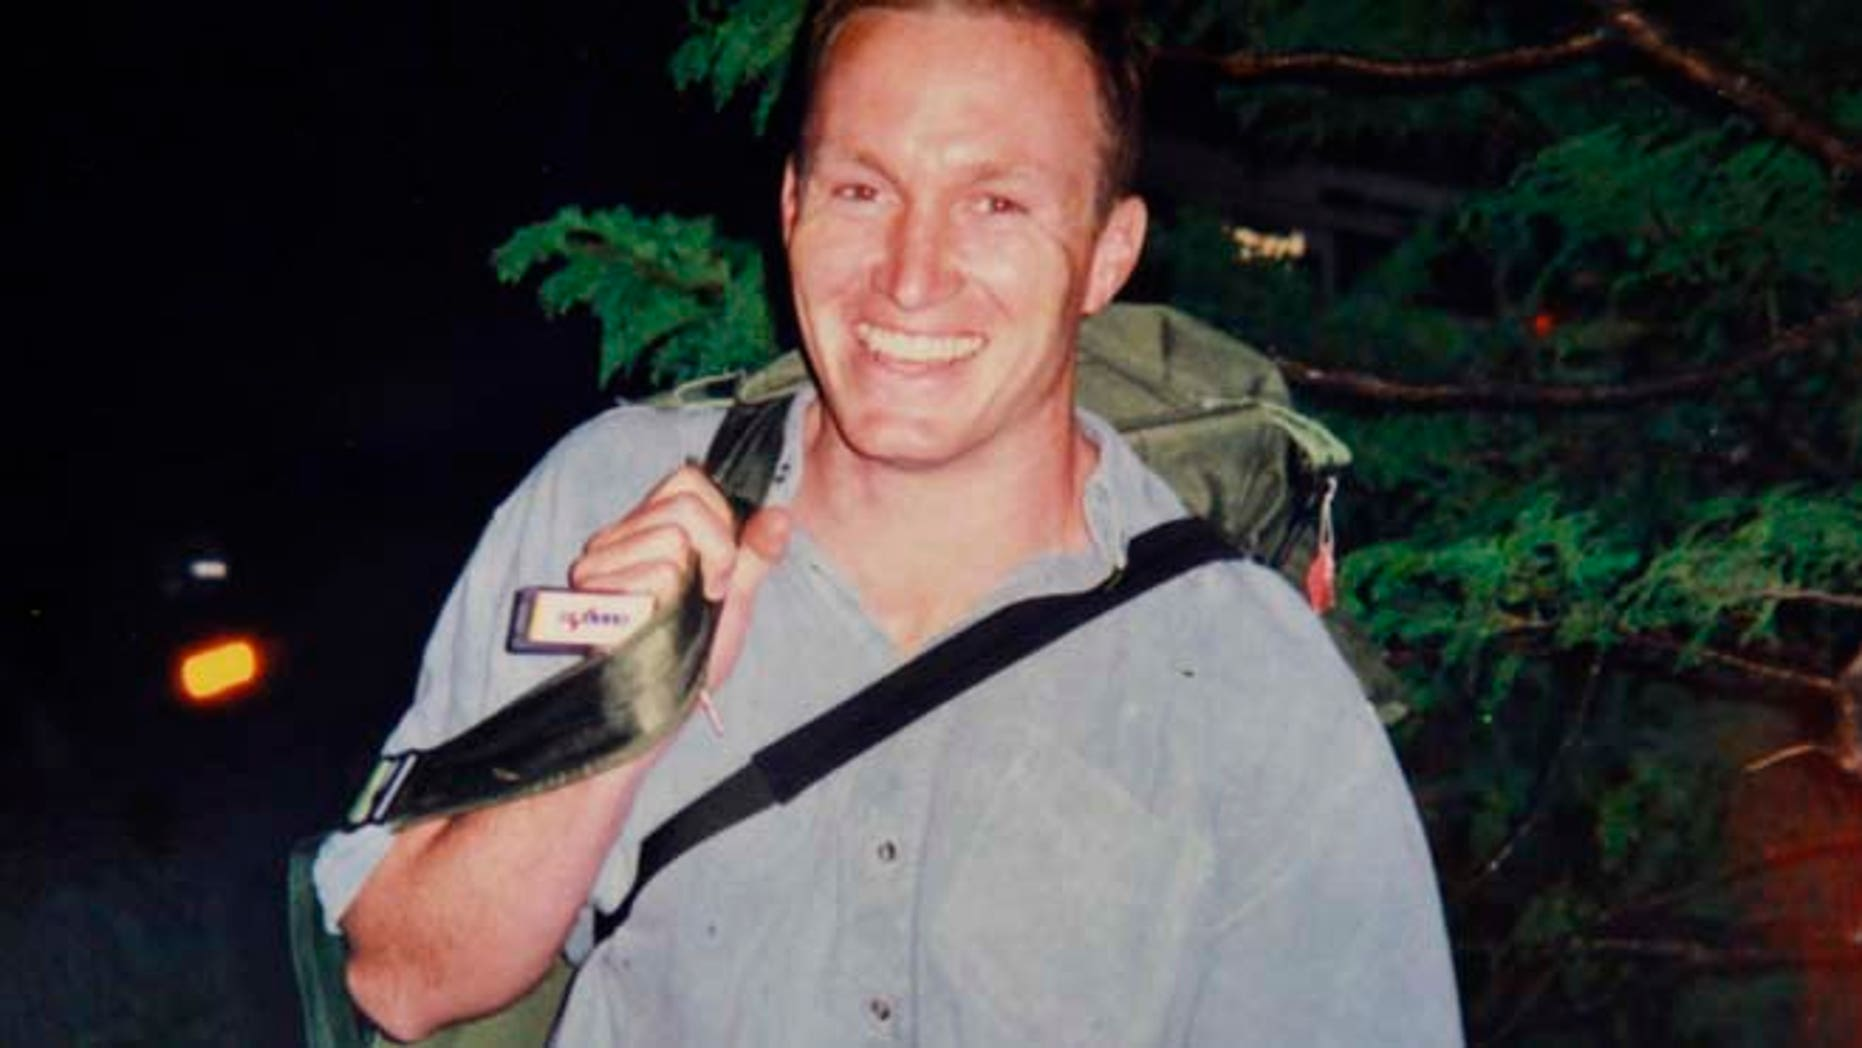 This undated file photo provided by Mark and Kate Quigley shows Glen Doherty, who died in an attack on the U.S. Consulate in Benghazi, Libya on Sept. 12, 2012.